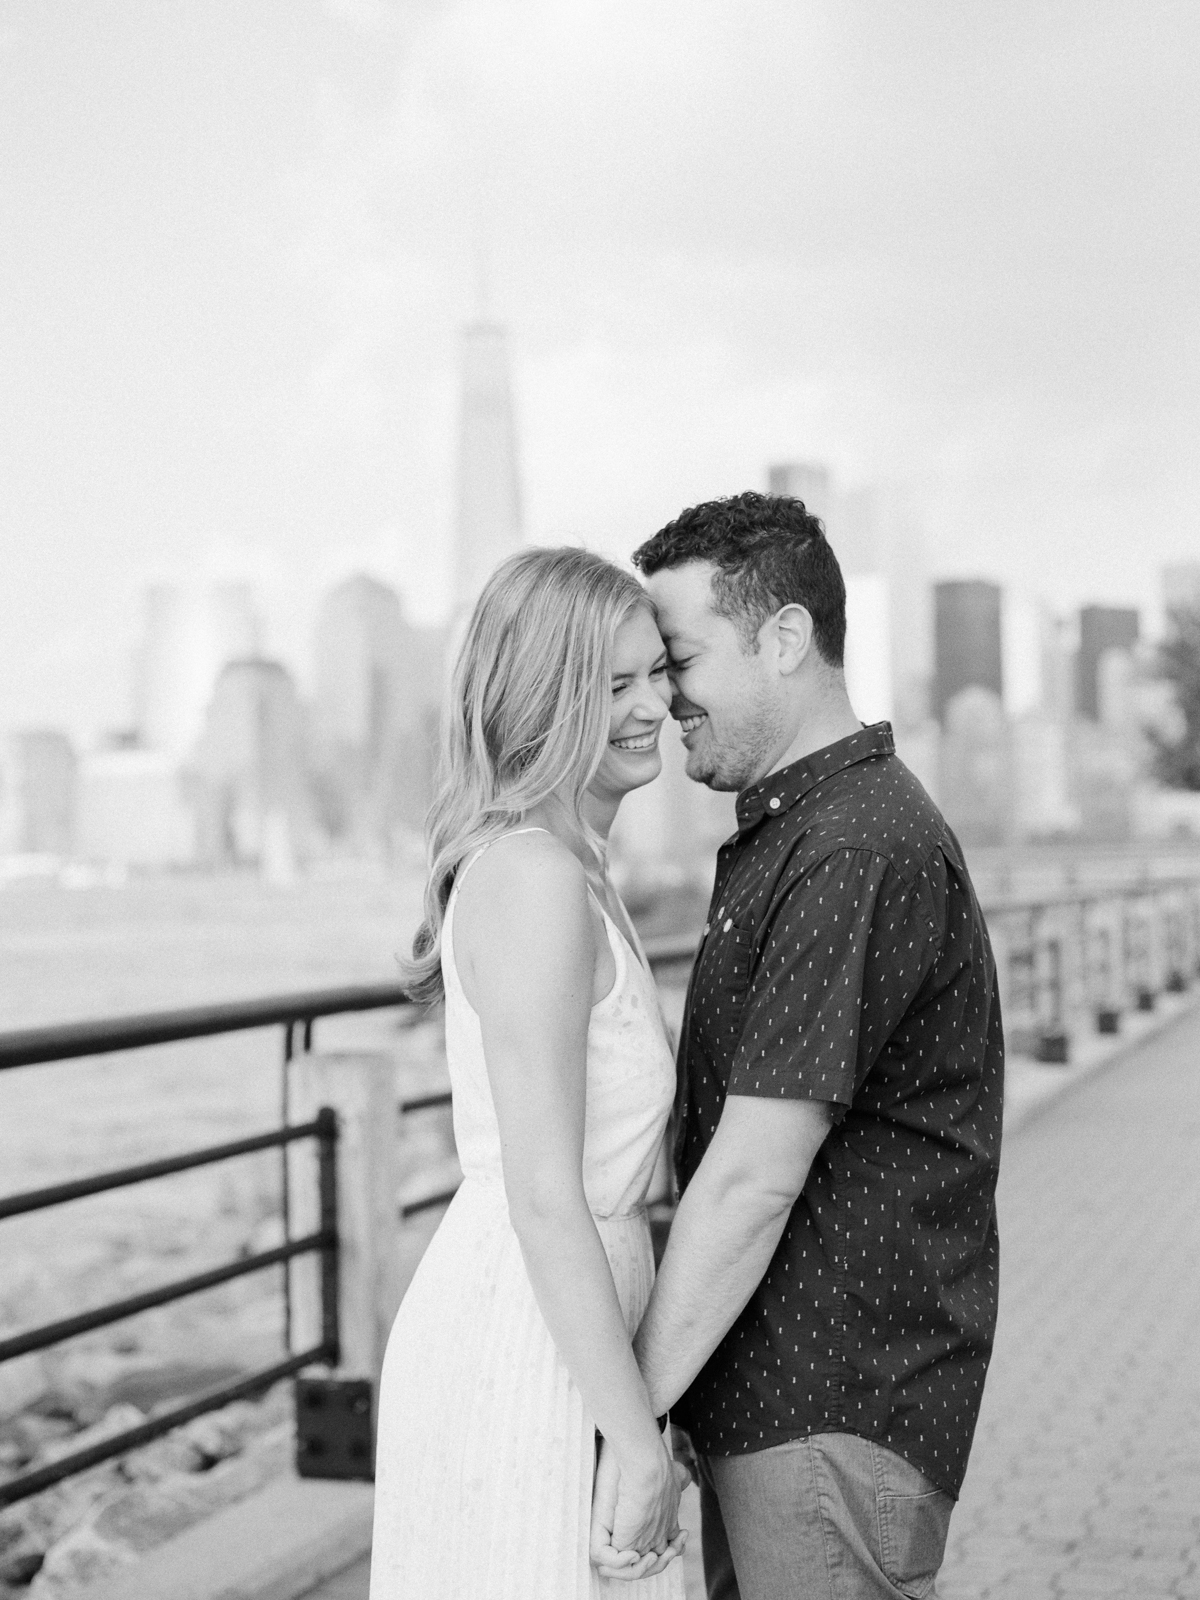 NYC-skyline-engagement-session-by-Tanya Isaeva-10.jpg